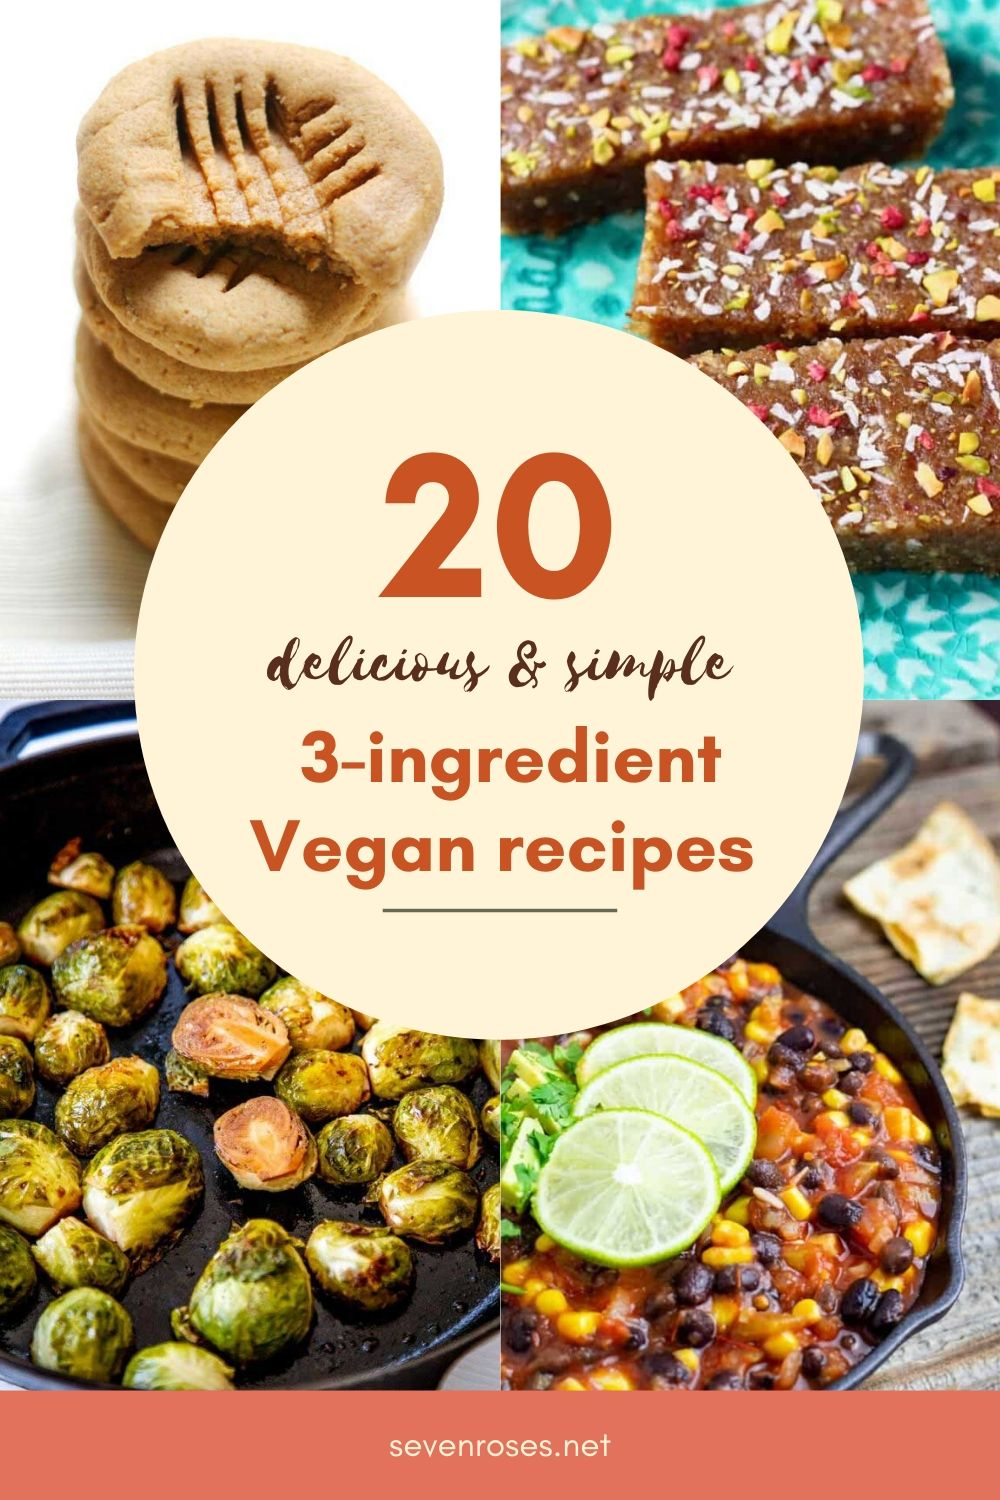 Need some quick Vegan recipe ideas? Here are 20 delicious & simple 3-ingredient recipes